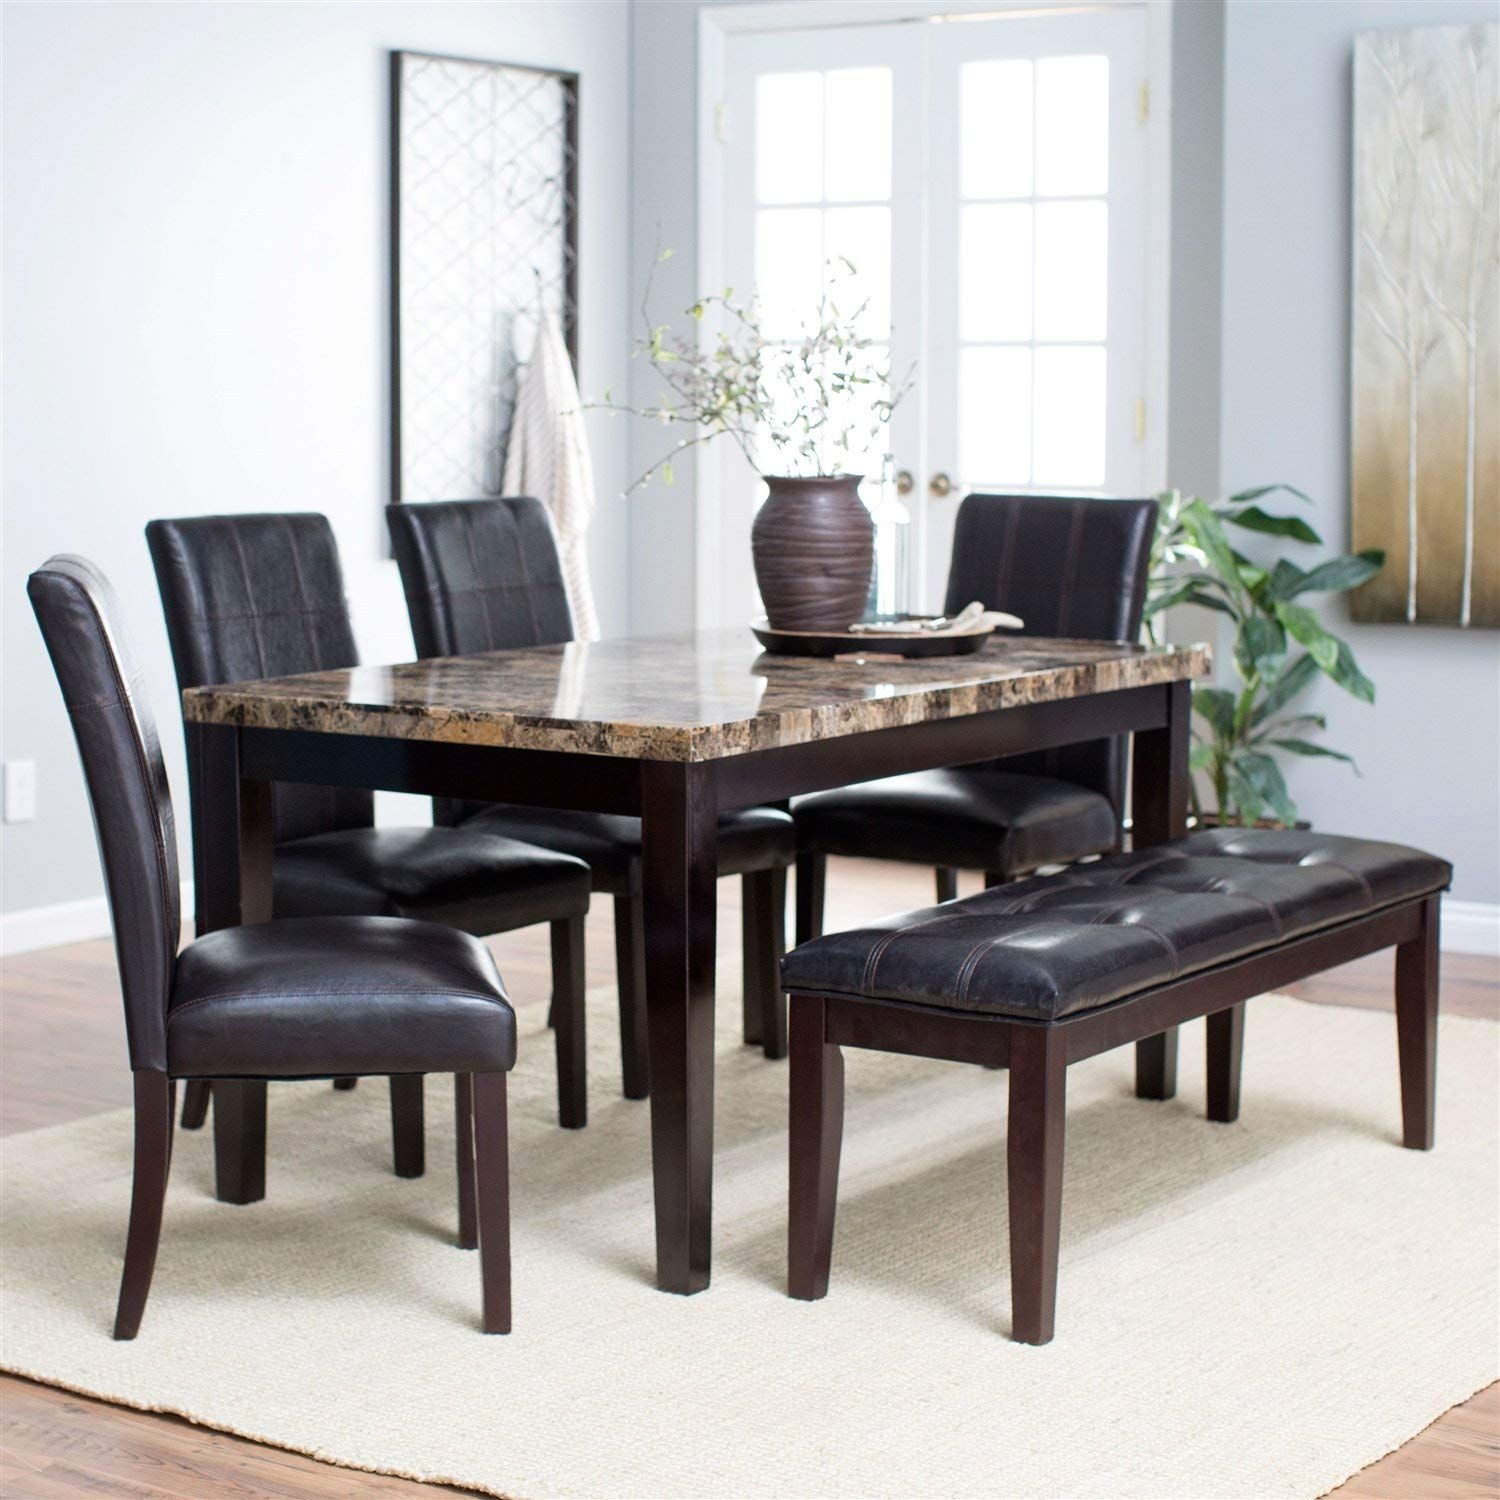 StarSun Depot Traditional 6Piece Dining Set with Faux